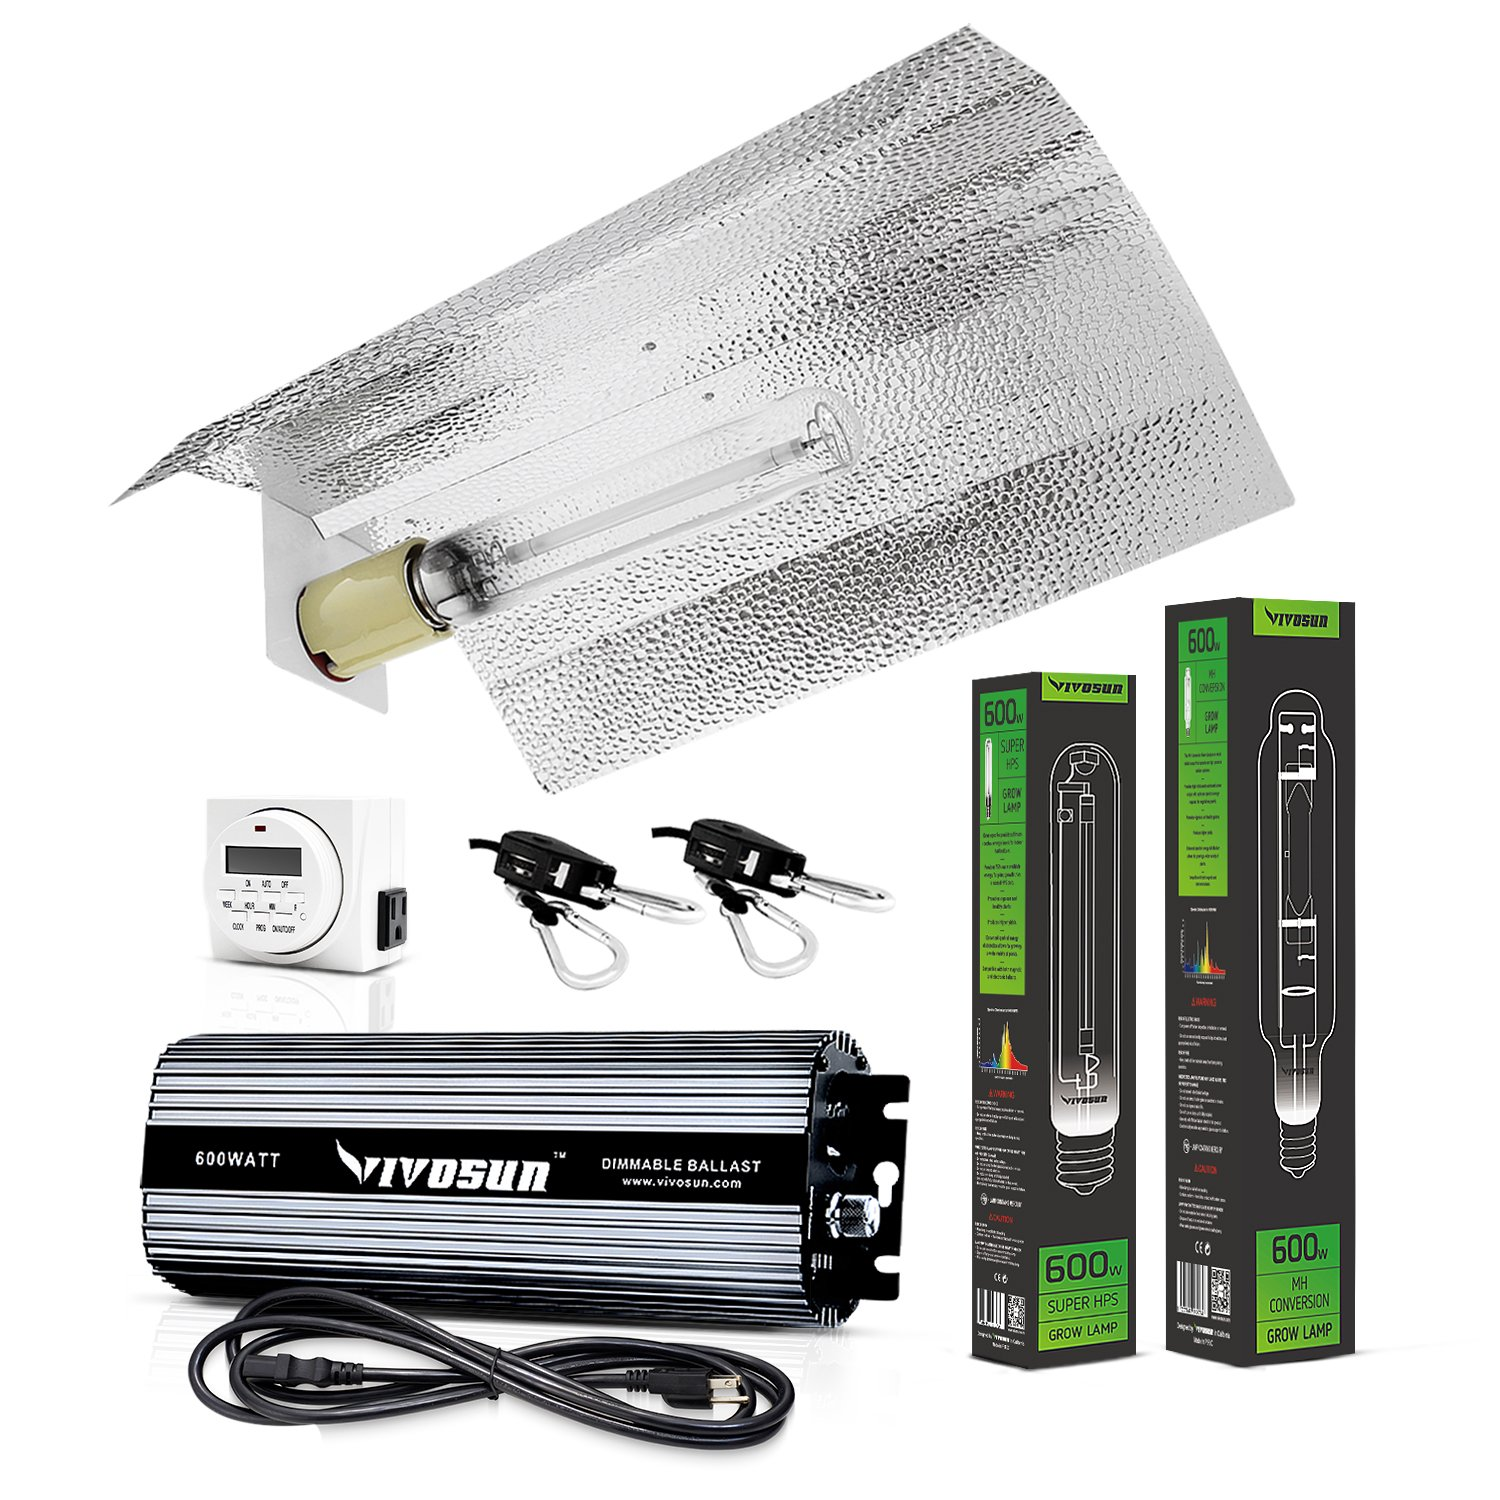 VIVOSUN Hydroponic 600 Watt HPS MH Grow Light Wing Reflector Kit - Easy to set up, High Stability & Compatibility ( Enhanced Version ) by VIVOSUN